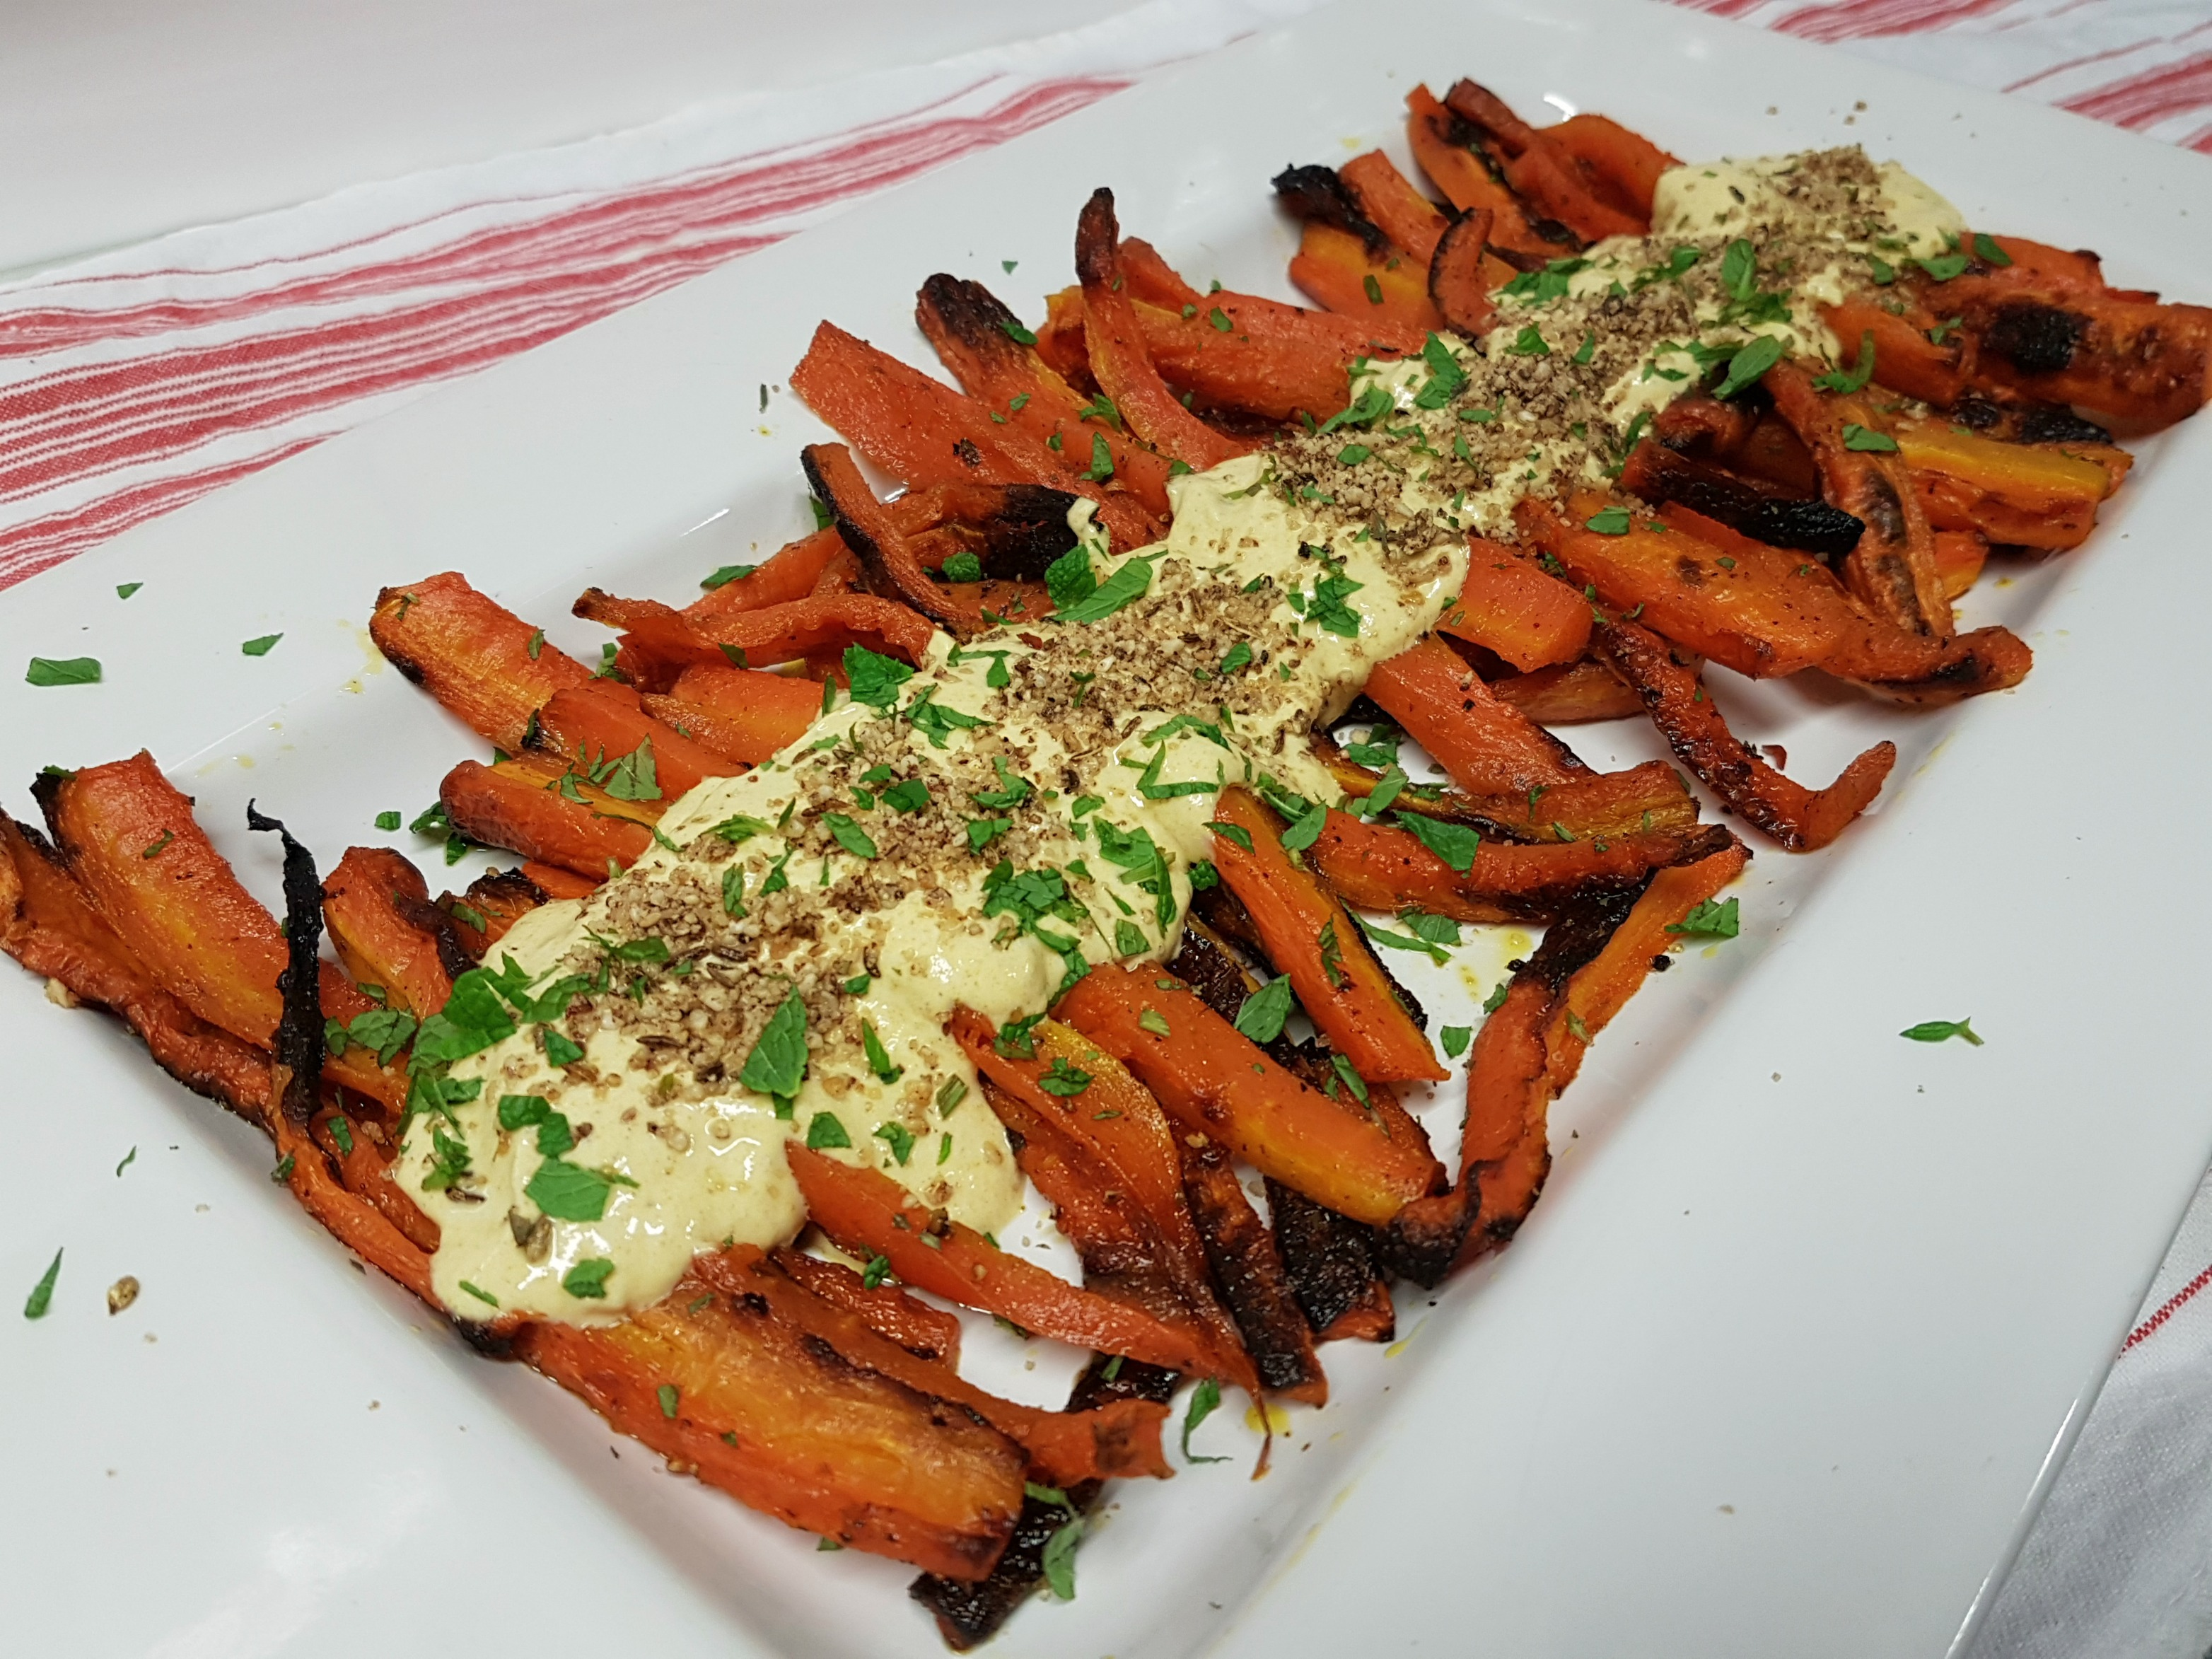 Roast Carrot Salad with Spiced Yoghurt Dip